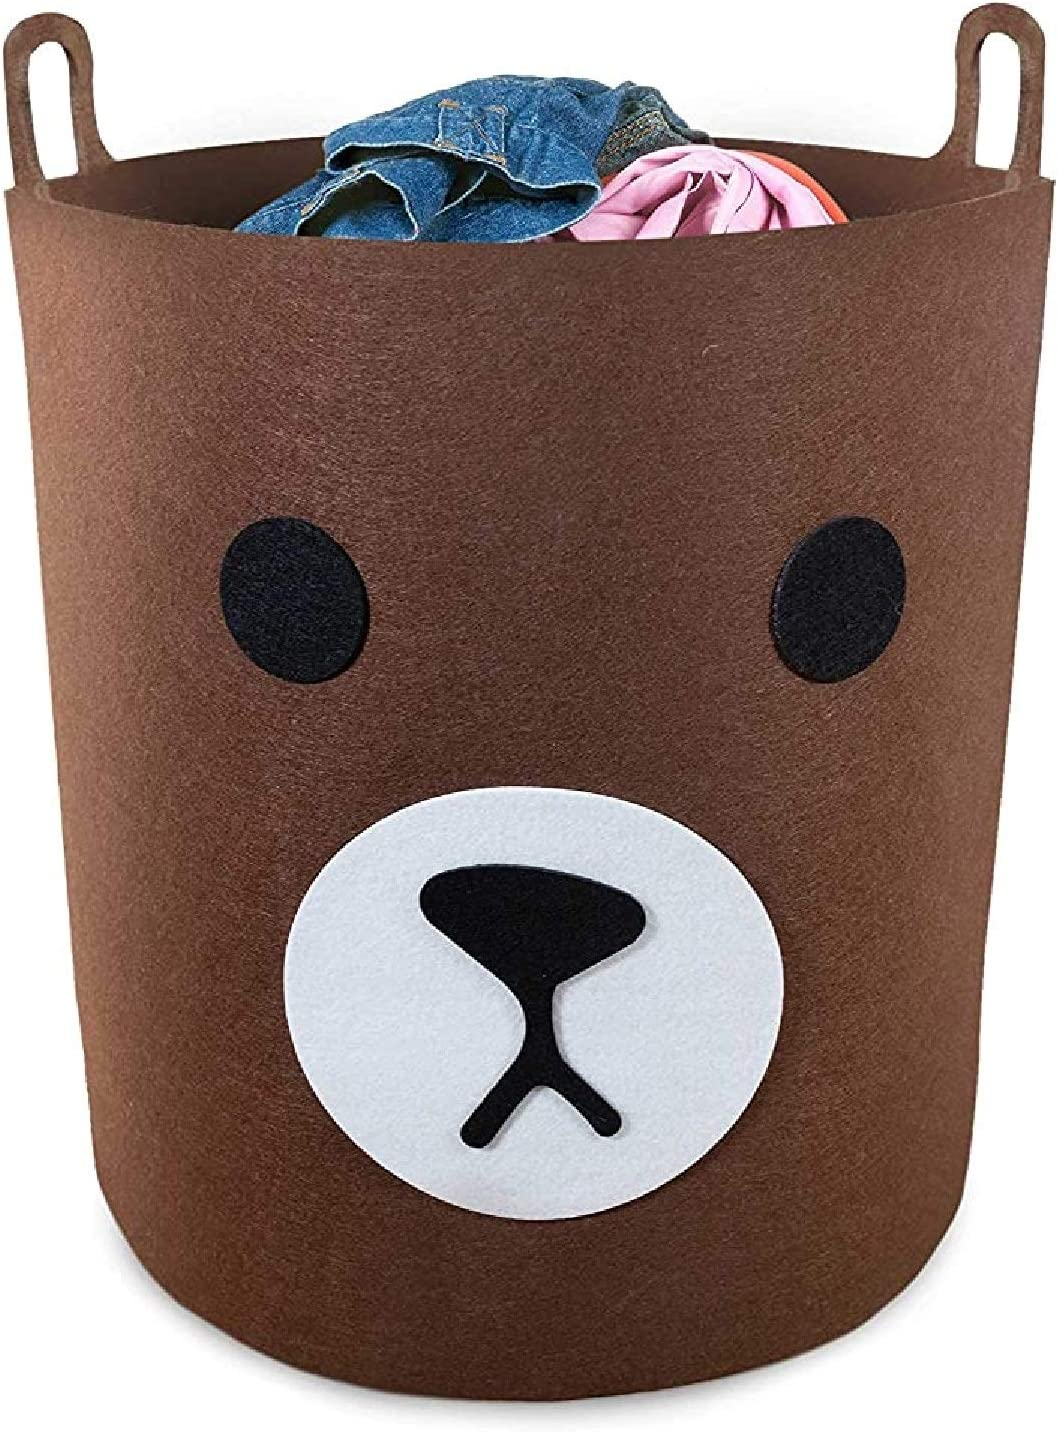 Baby Hamper For Laundry Storage and Toys , Baby Laundry Basket, Toy Baskets Storage Kids, Kids Laundry Hamper, Toy Storage Basket for Kids, Kids Hampers For Laundry, Nursery Hamper (Brown Bear)